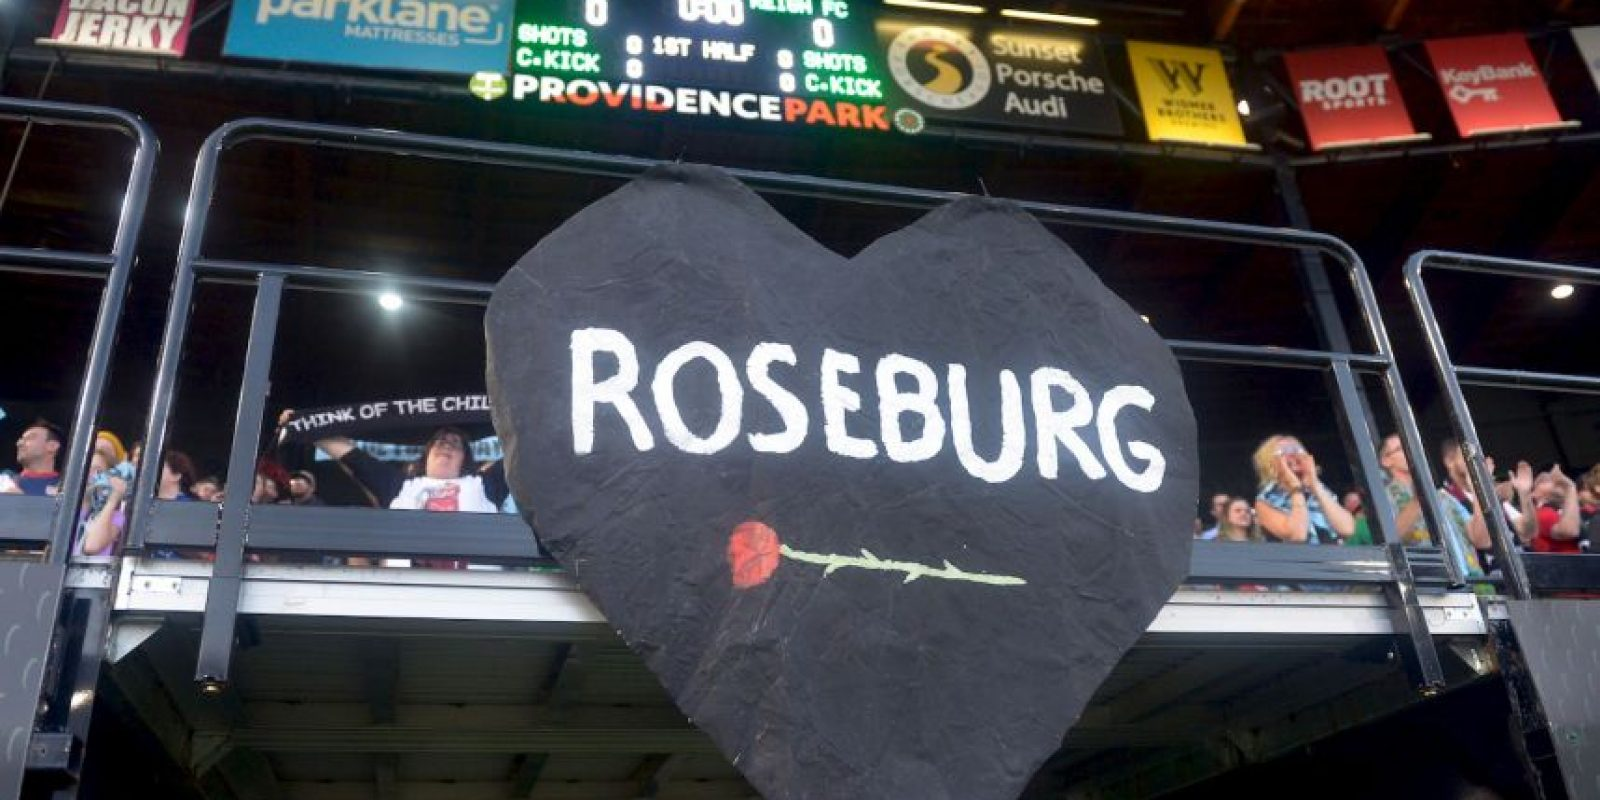 Roseburg, Oregon Foto: Getty Images